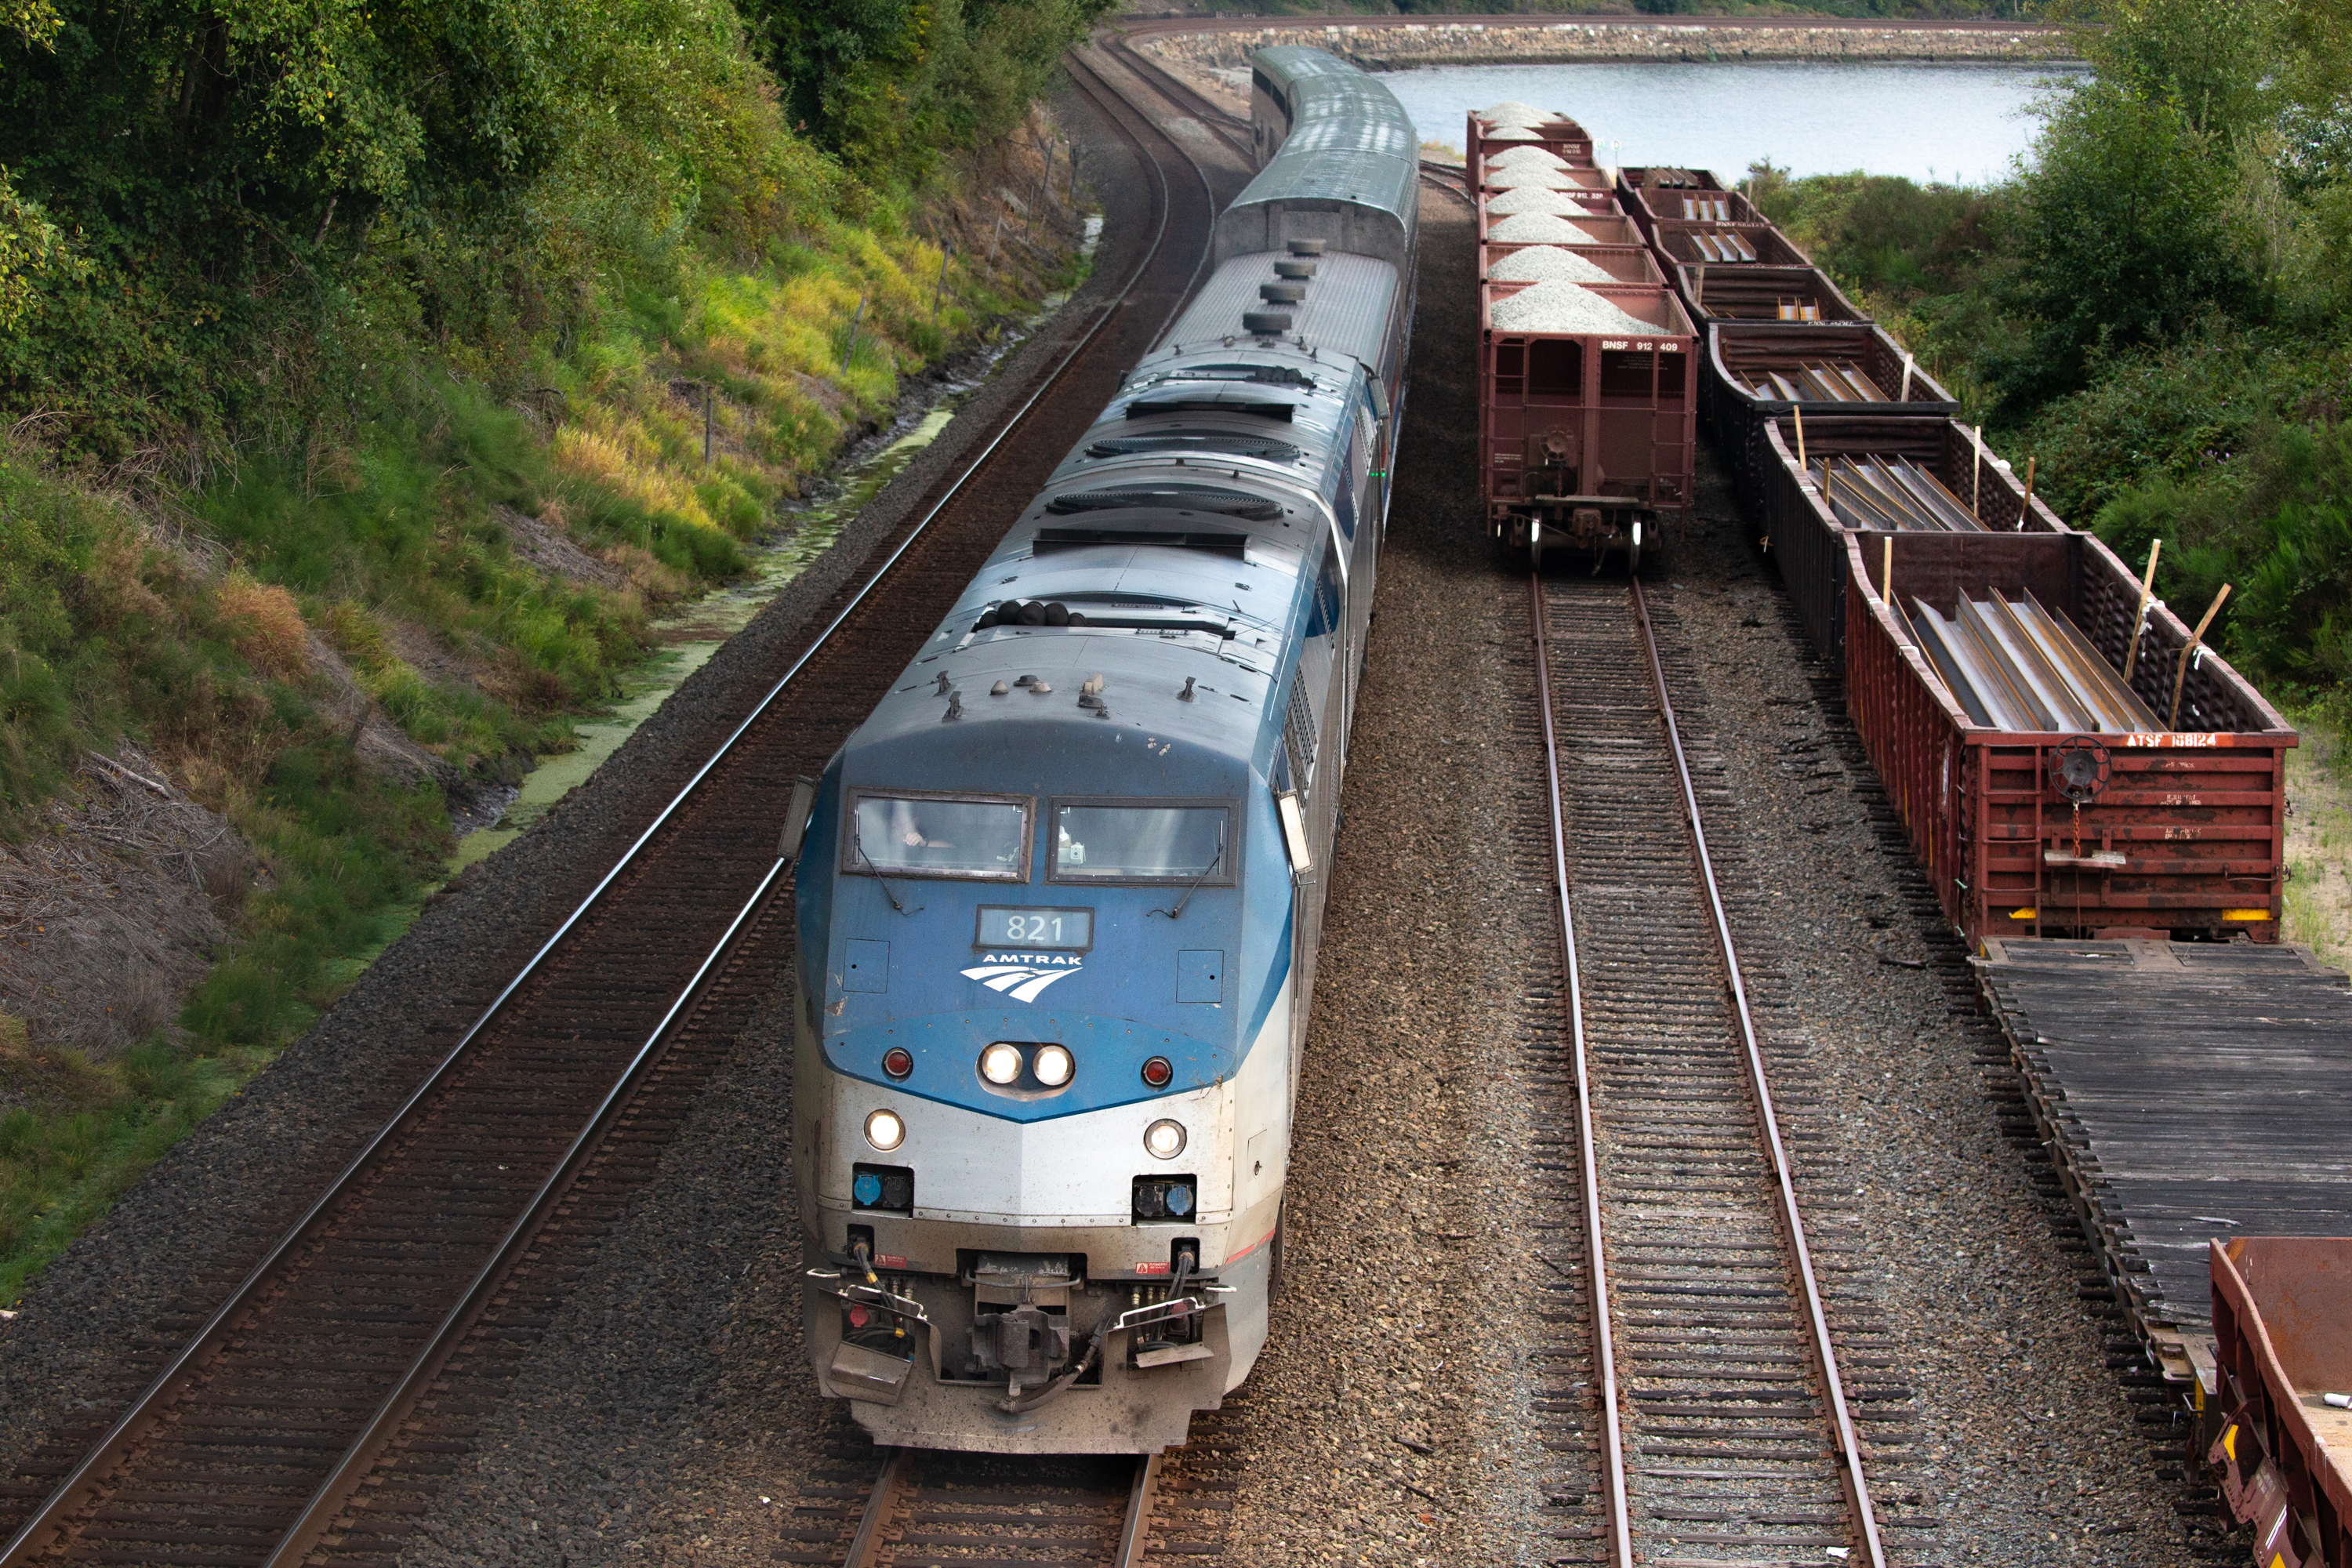 Amtrak state of mind: What if America took its train system seriously?